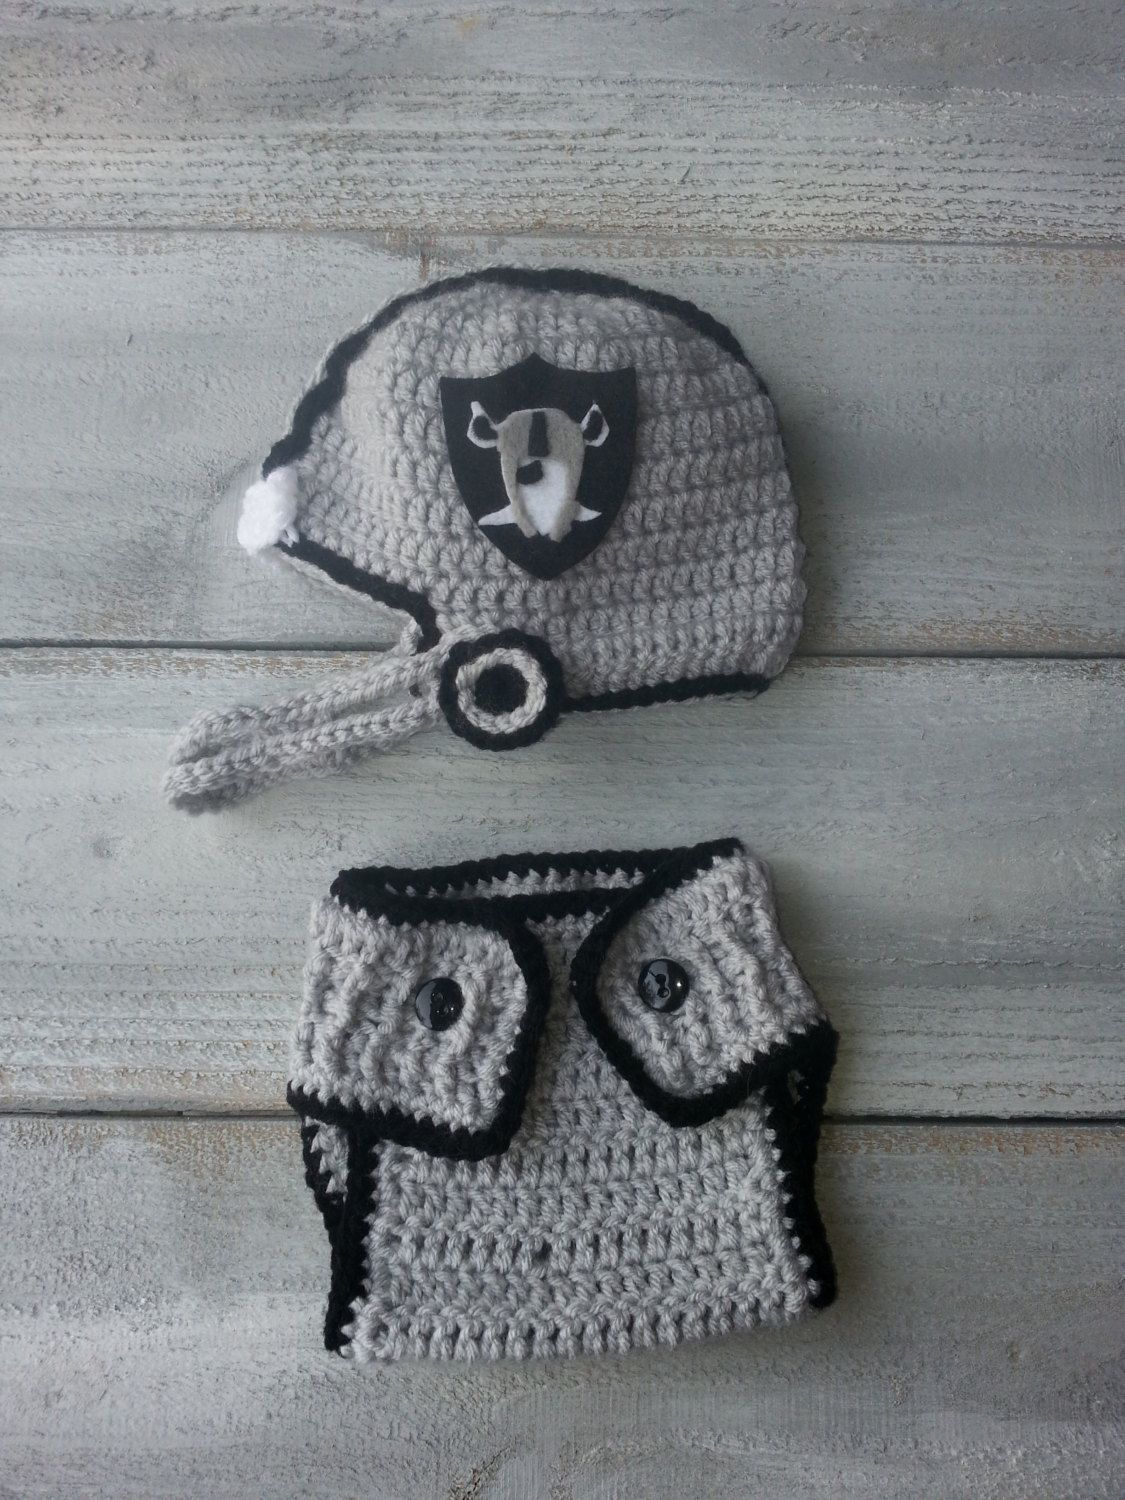 d70818c1283 Oakland+Raiders+Inspired+Crochet+Helmet+and+by+foryouandmedesigns